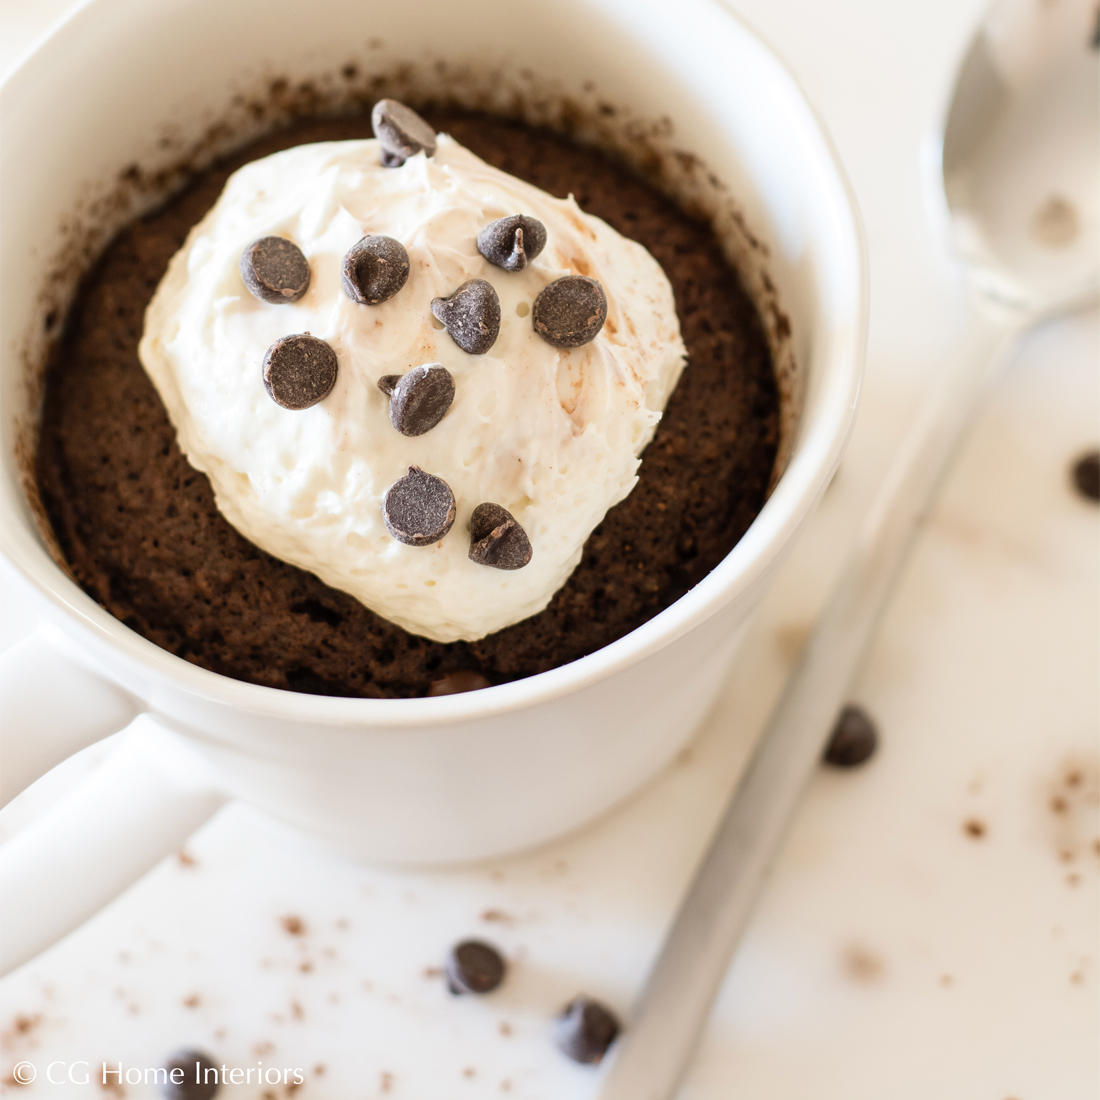 90-second Keto Thin Mint Mug Cake w/ Cheesecake Frosting